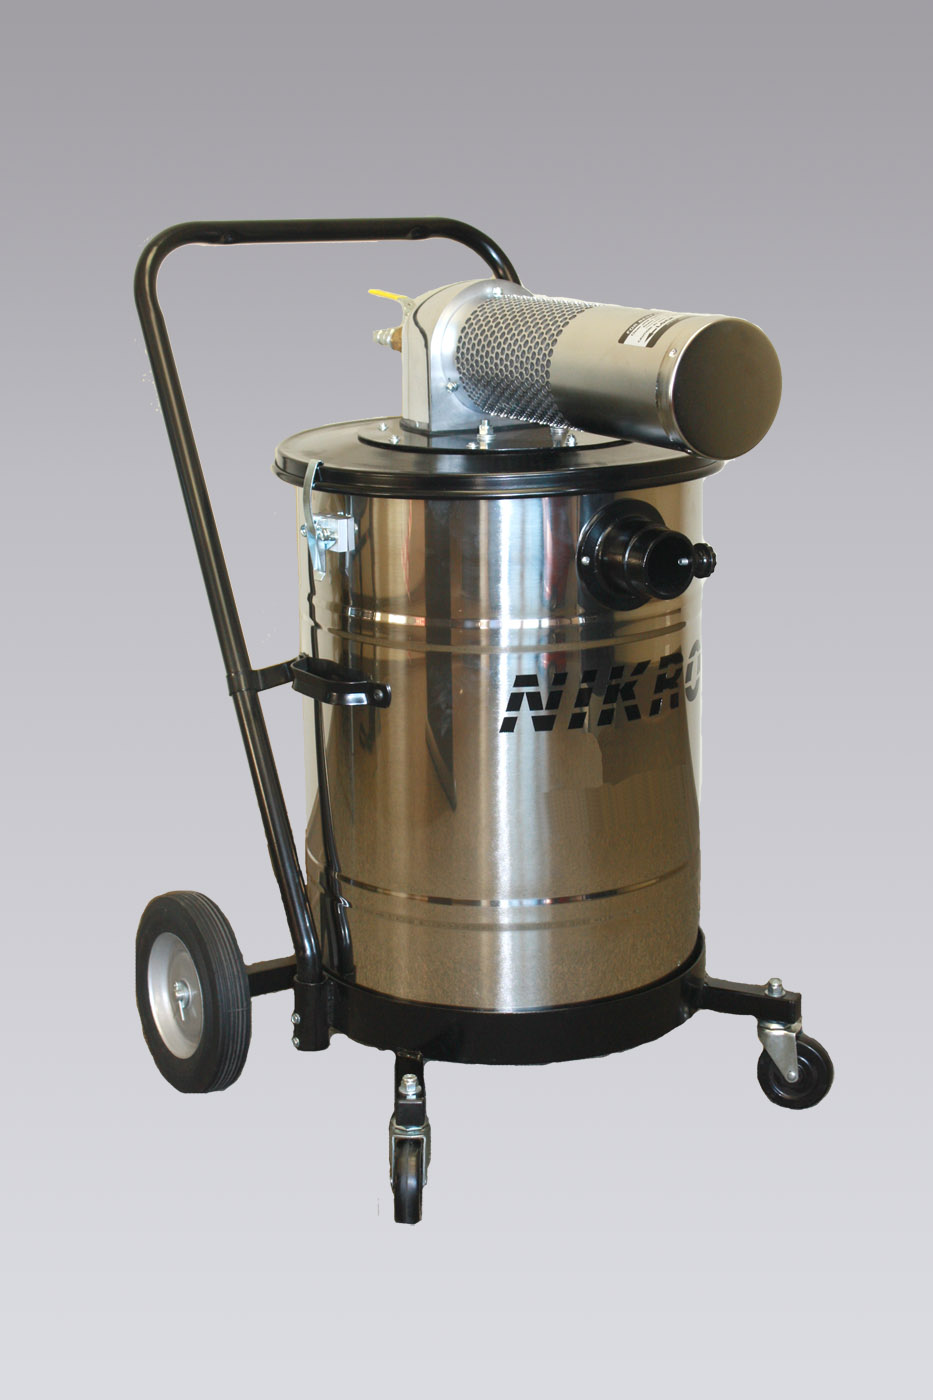 AWS15150 - Stainless Steel Pneumatic Vacuums/ Compressed Air Powered Vacuums - NIKRO Industries, Inc.